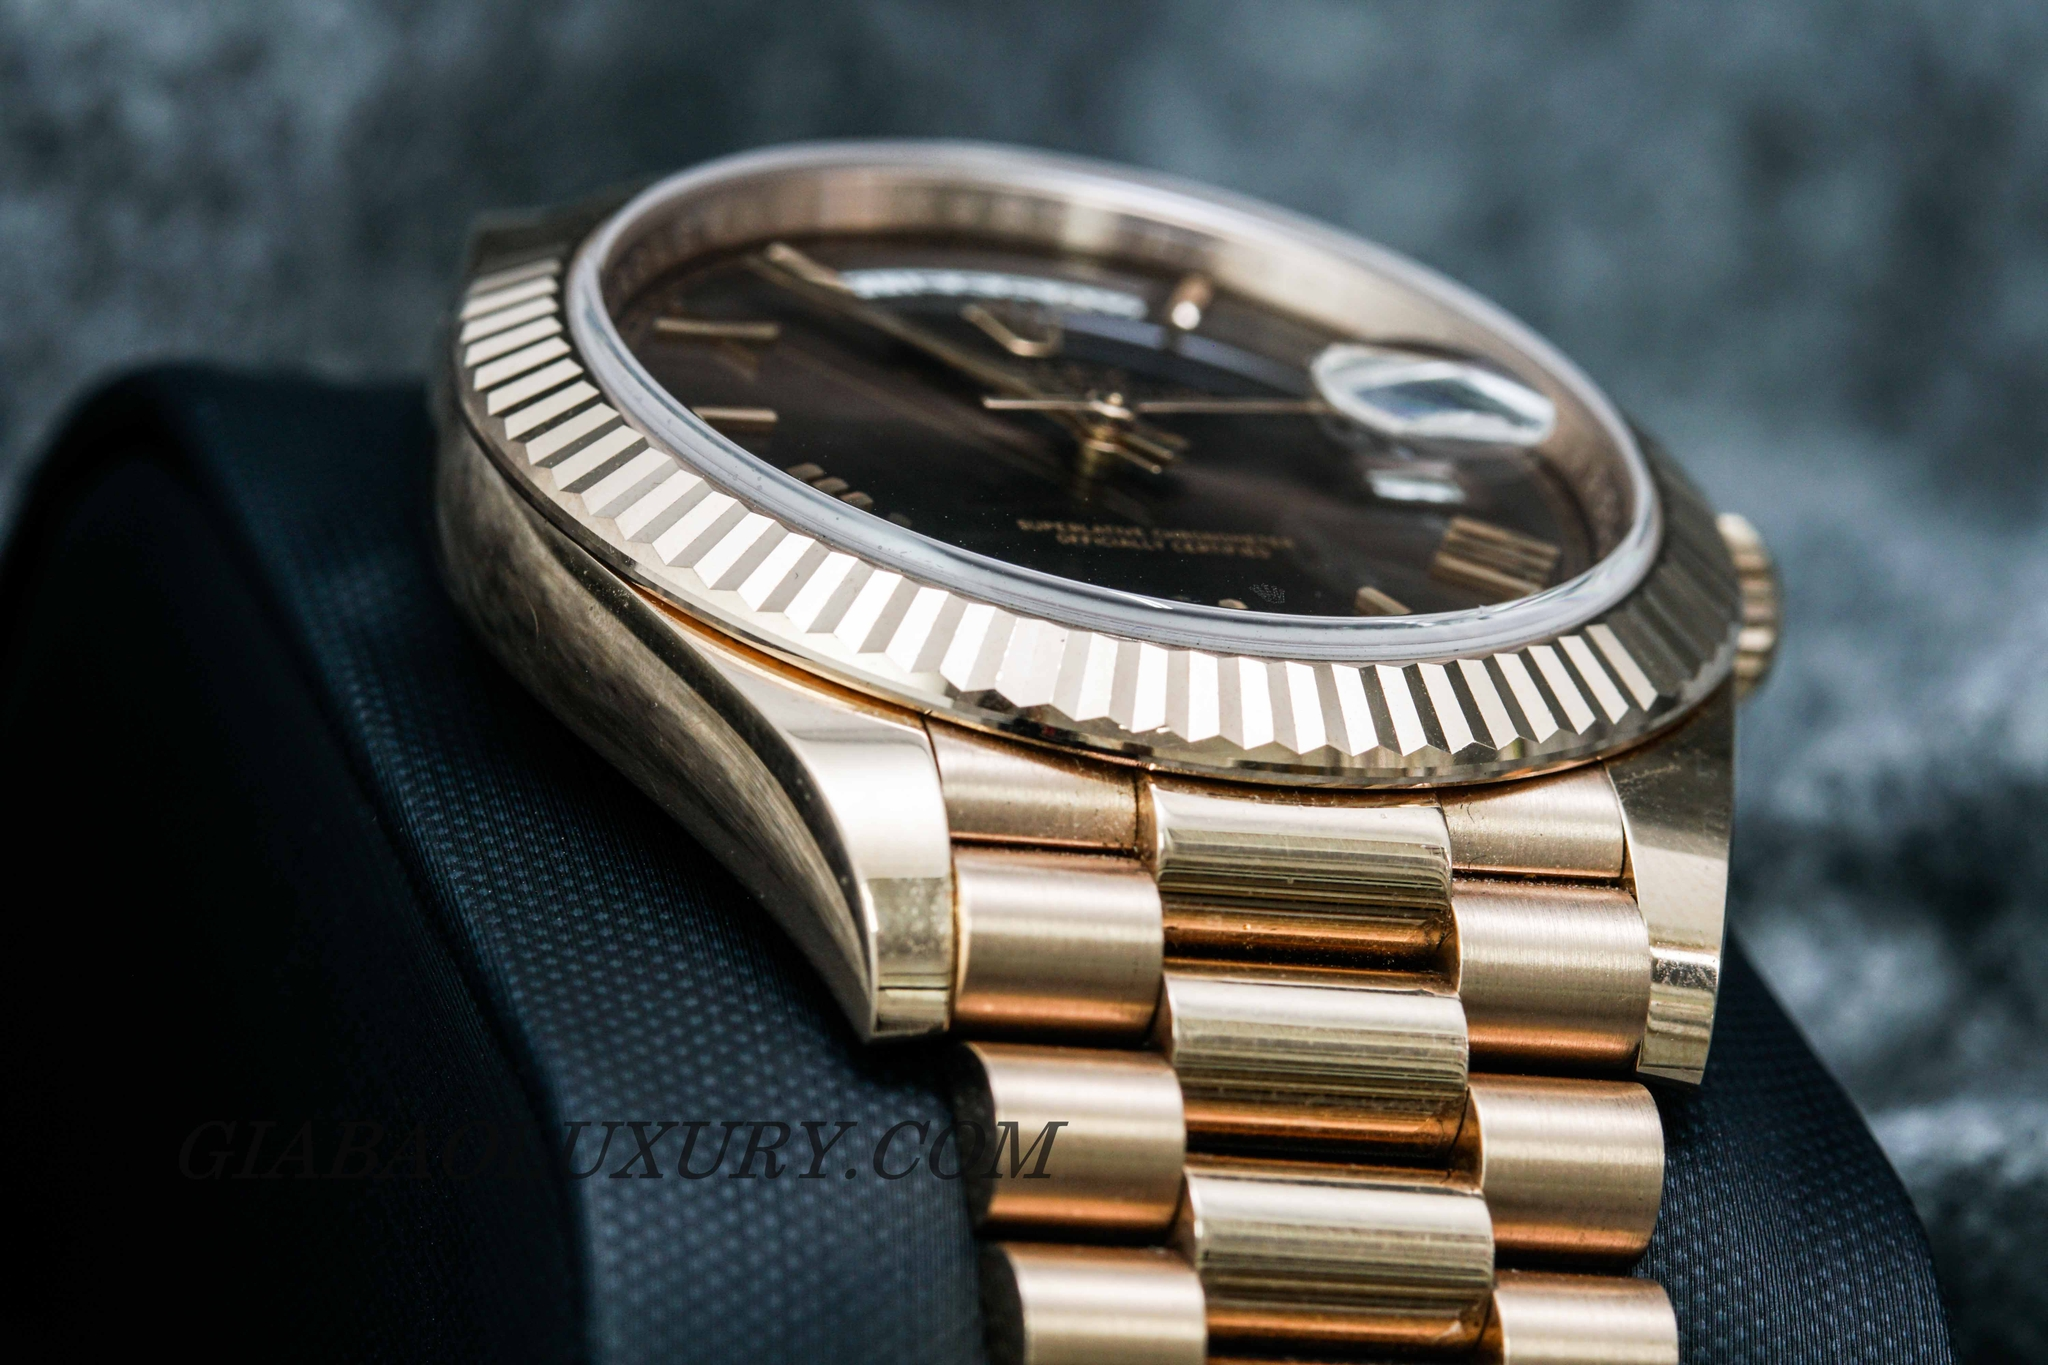 ĐỒNG HỒ ROLEX OYSTER PERPETUAL DAY-DATE 228235